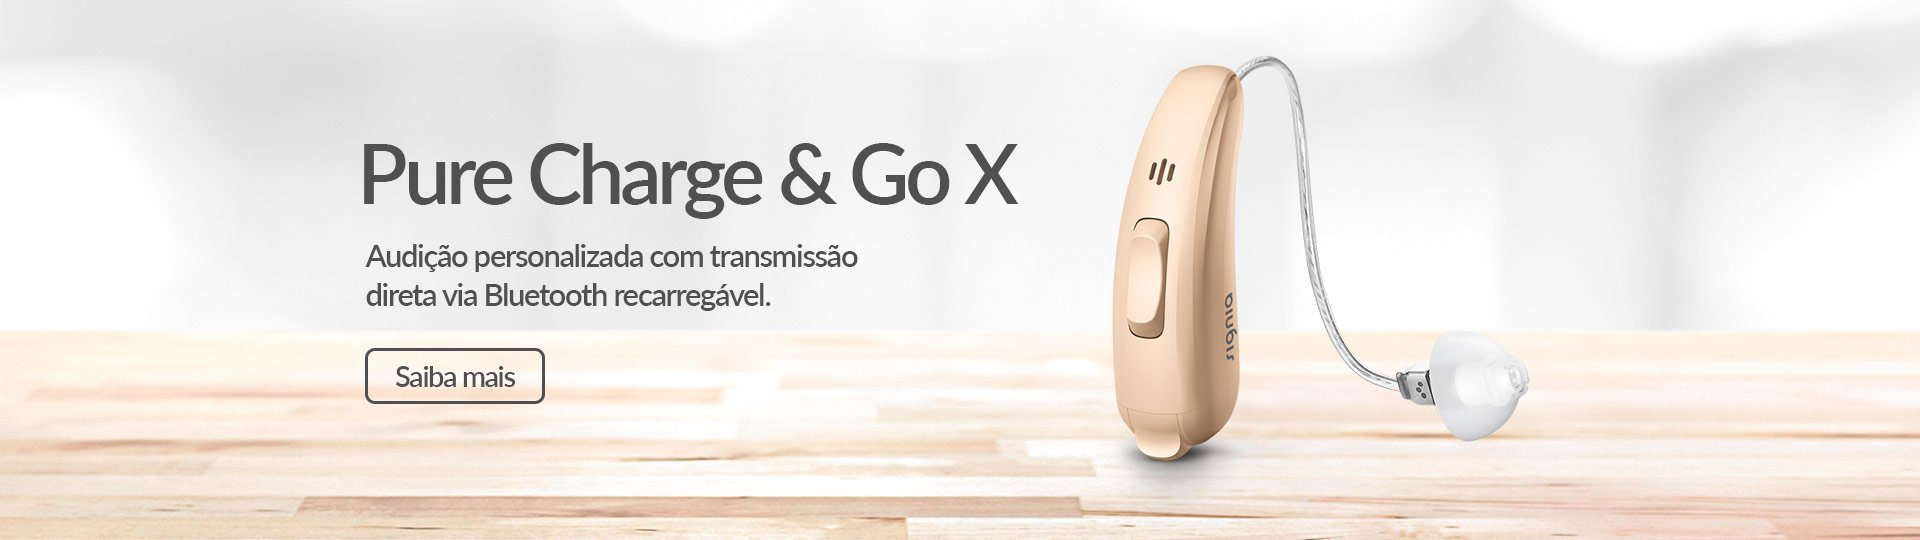 Pure Charge & Go X